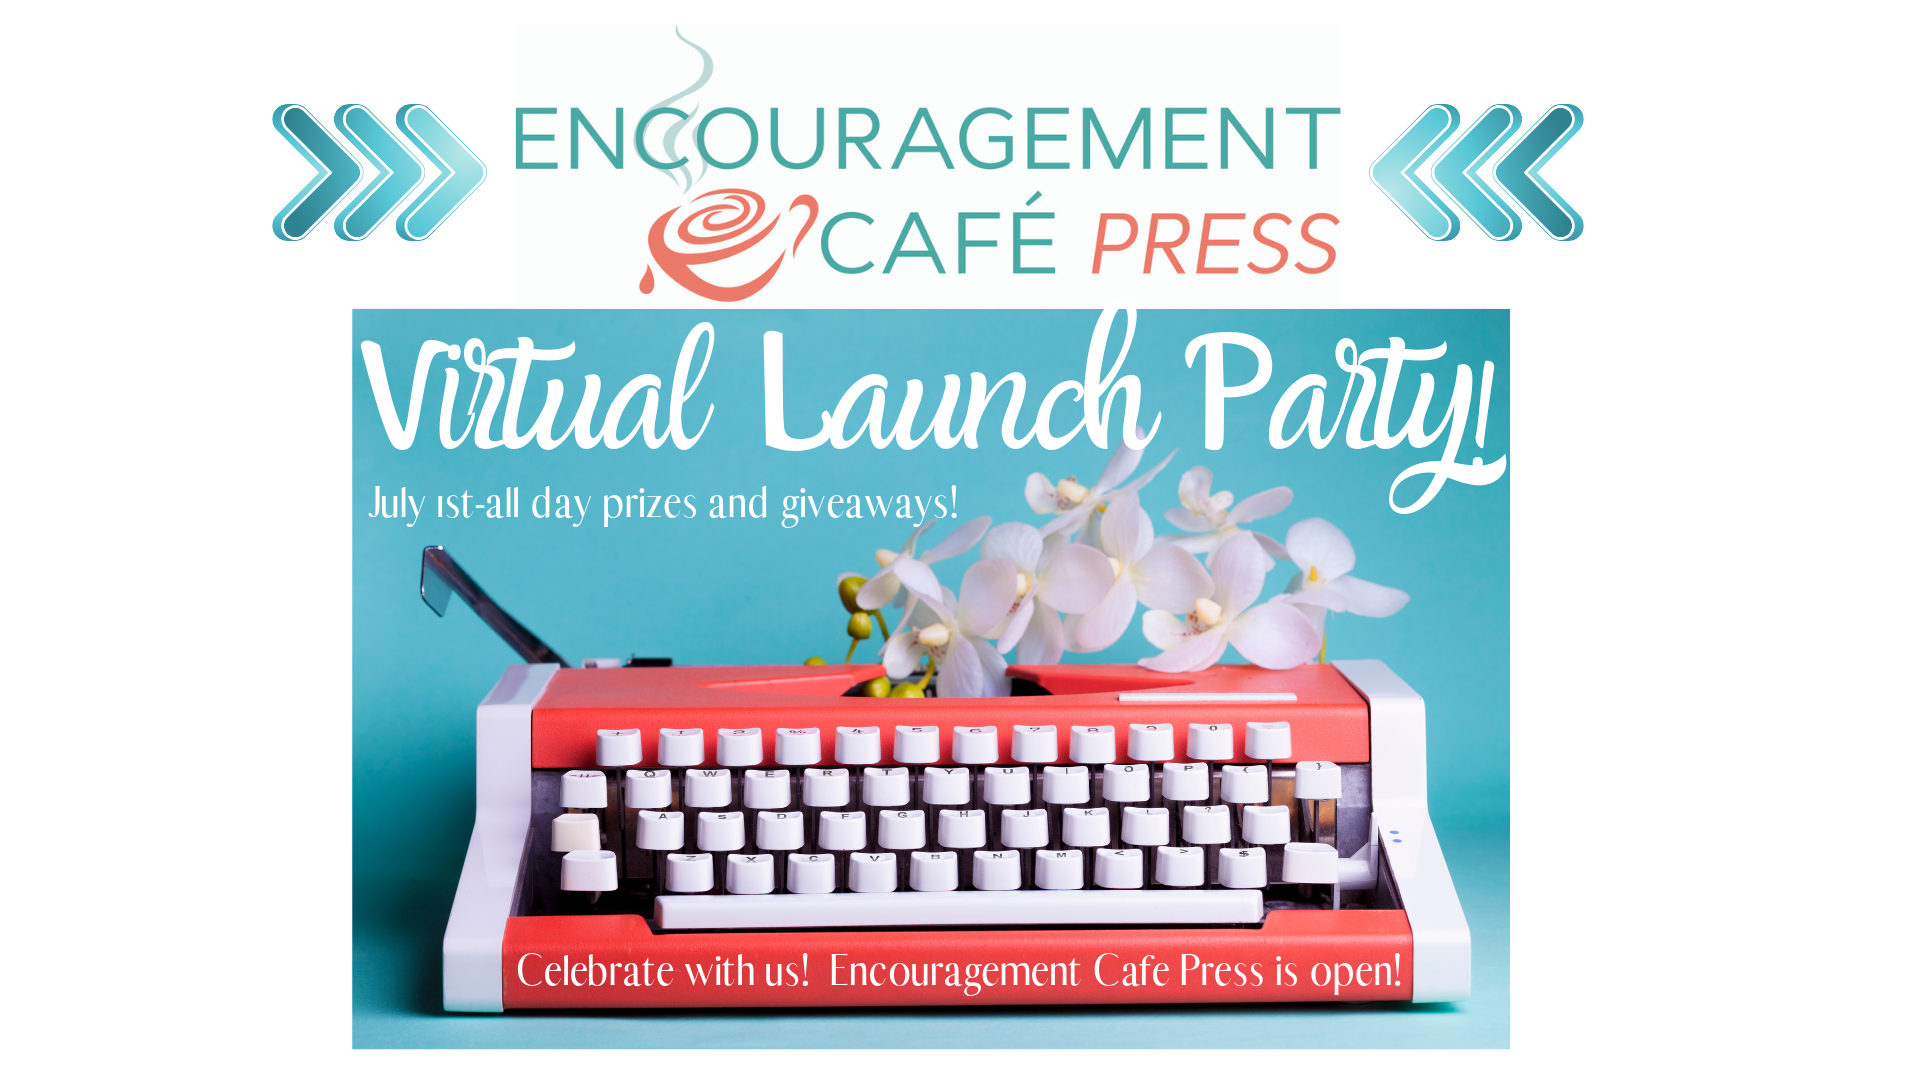 EC Press Mission Statement: Encouragement Café Press publishes pick-me-ups for the soul, fuel for a weary heart, and stories that share the morals, values and character of the Christian faith, through the Gospel of Jesus Christ.